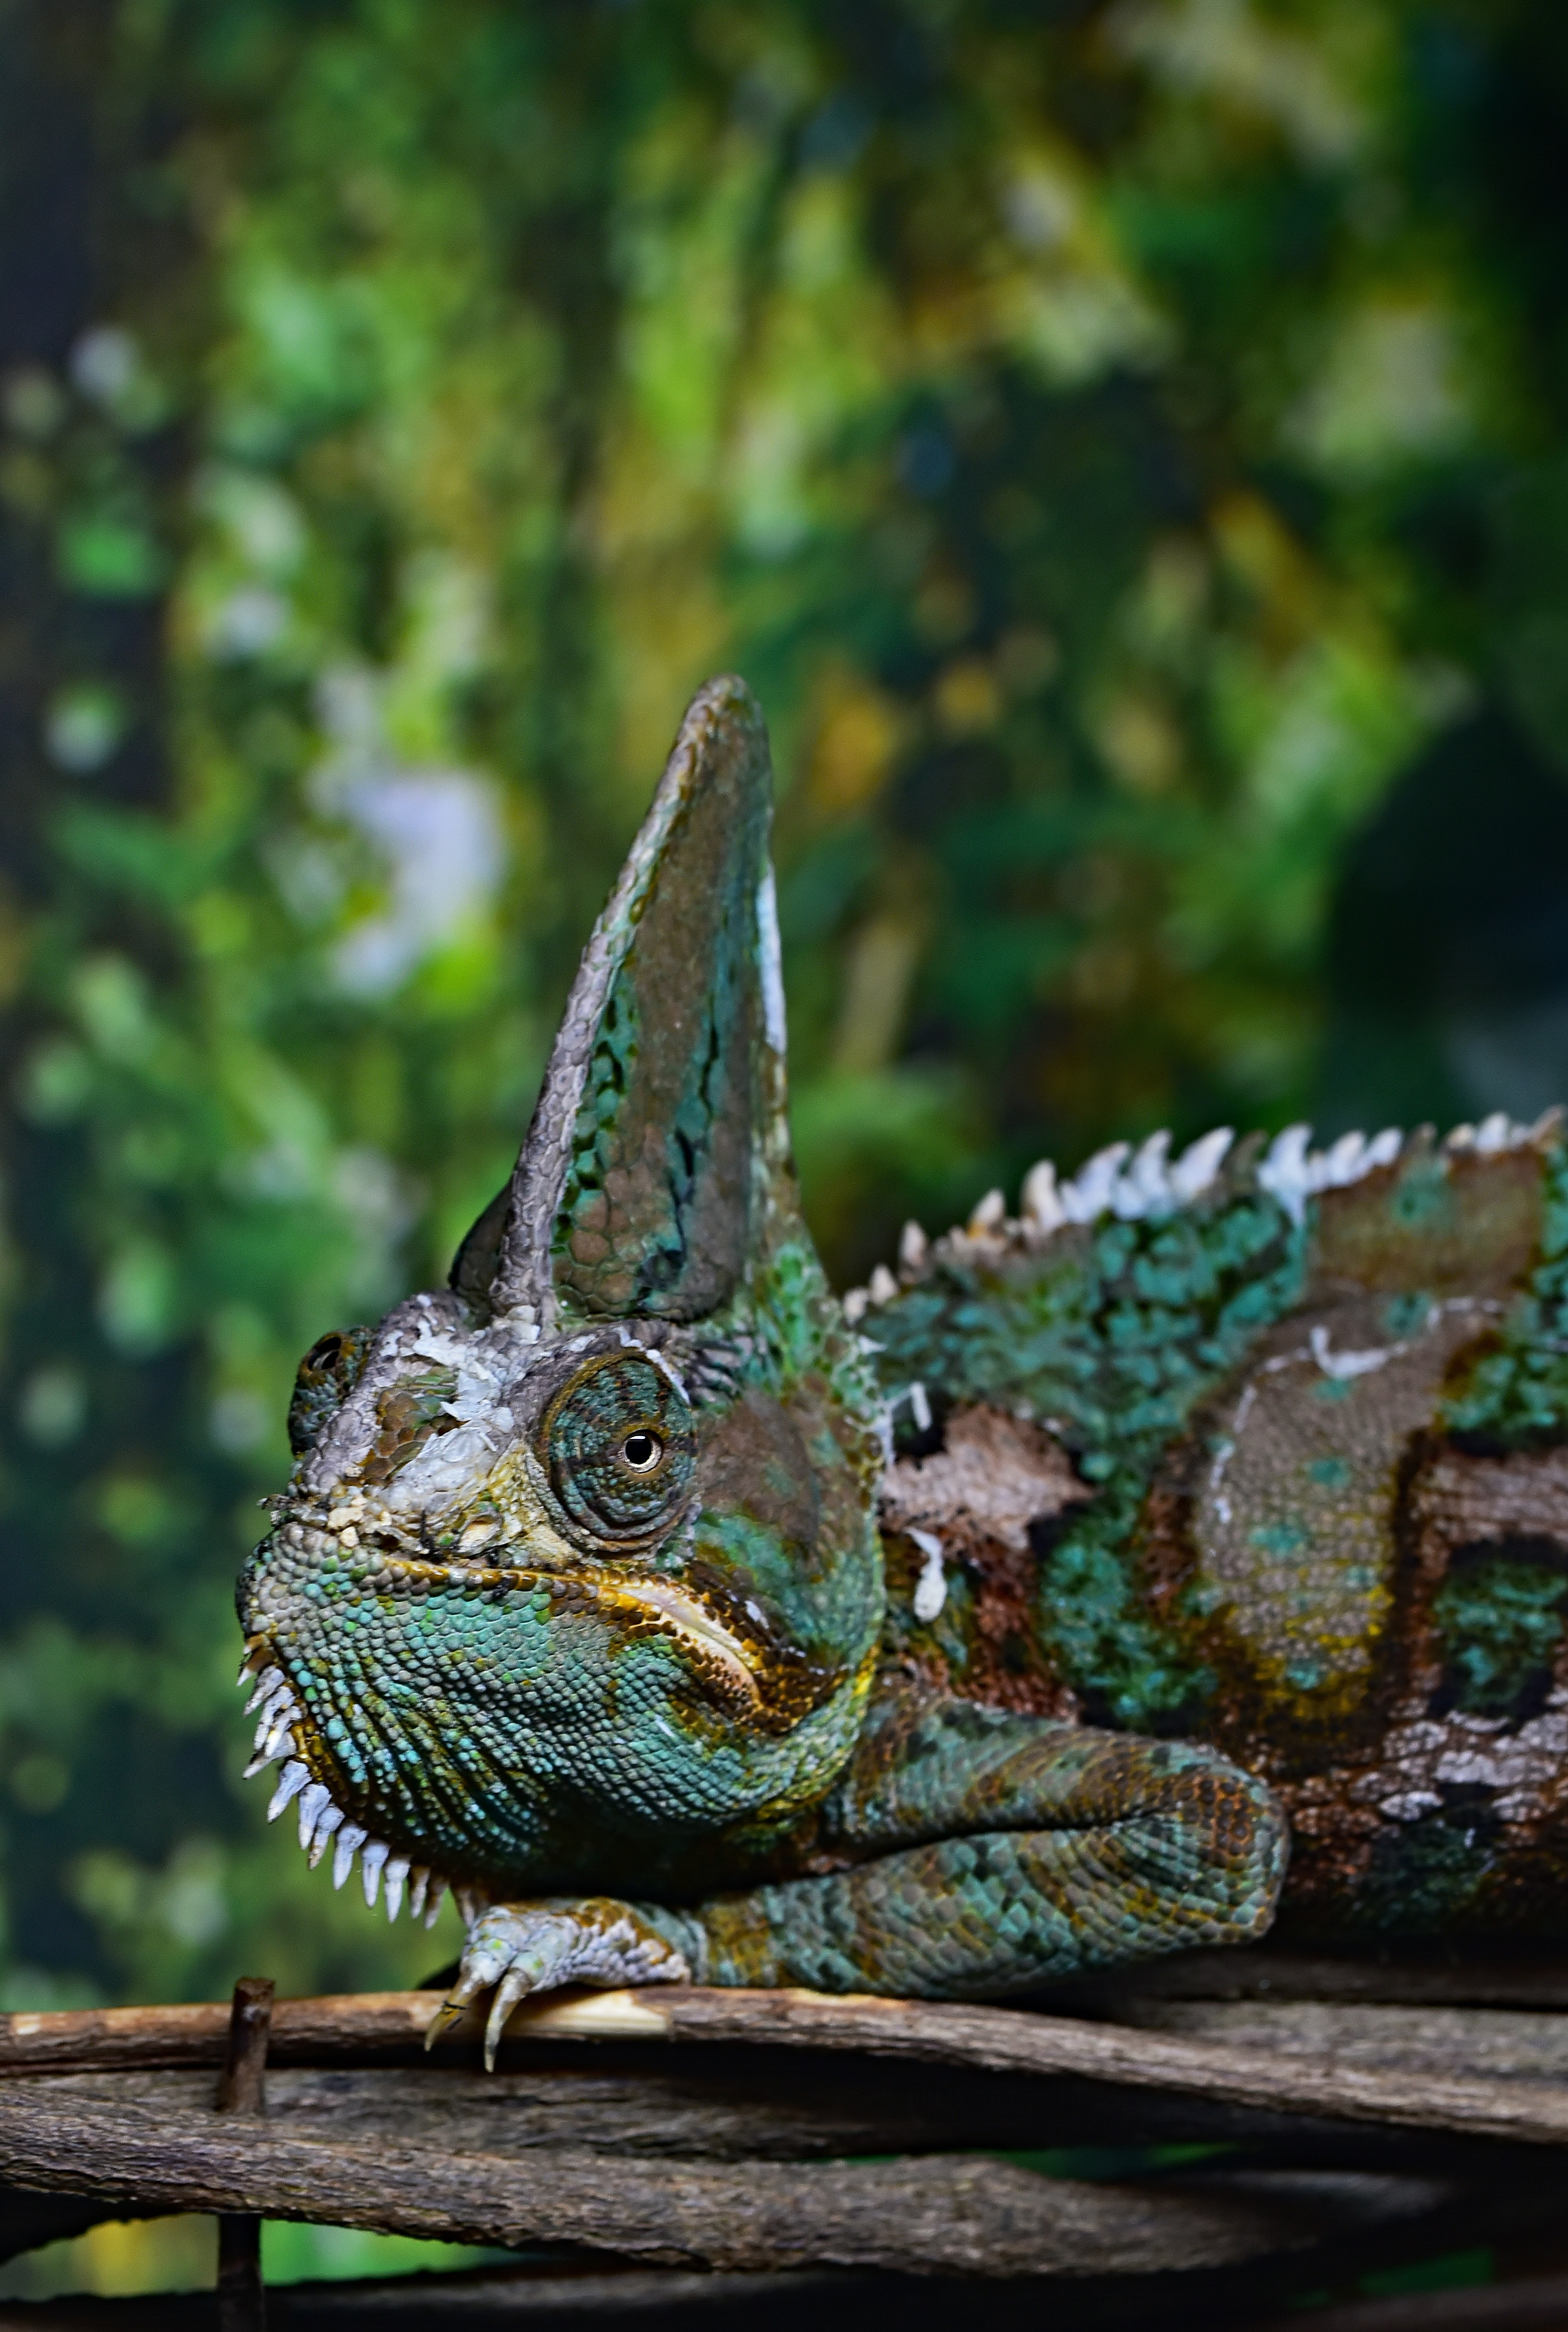 closeup photography of chameleon on tree branch